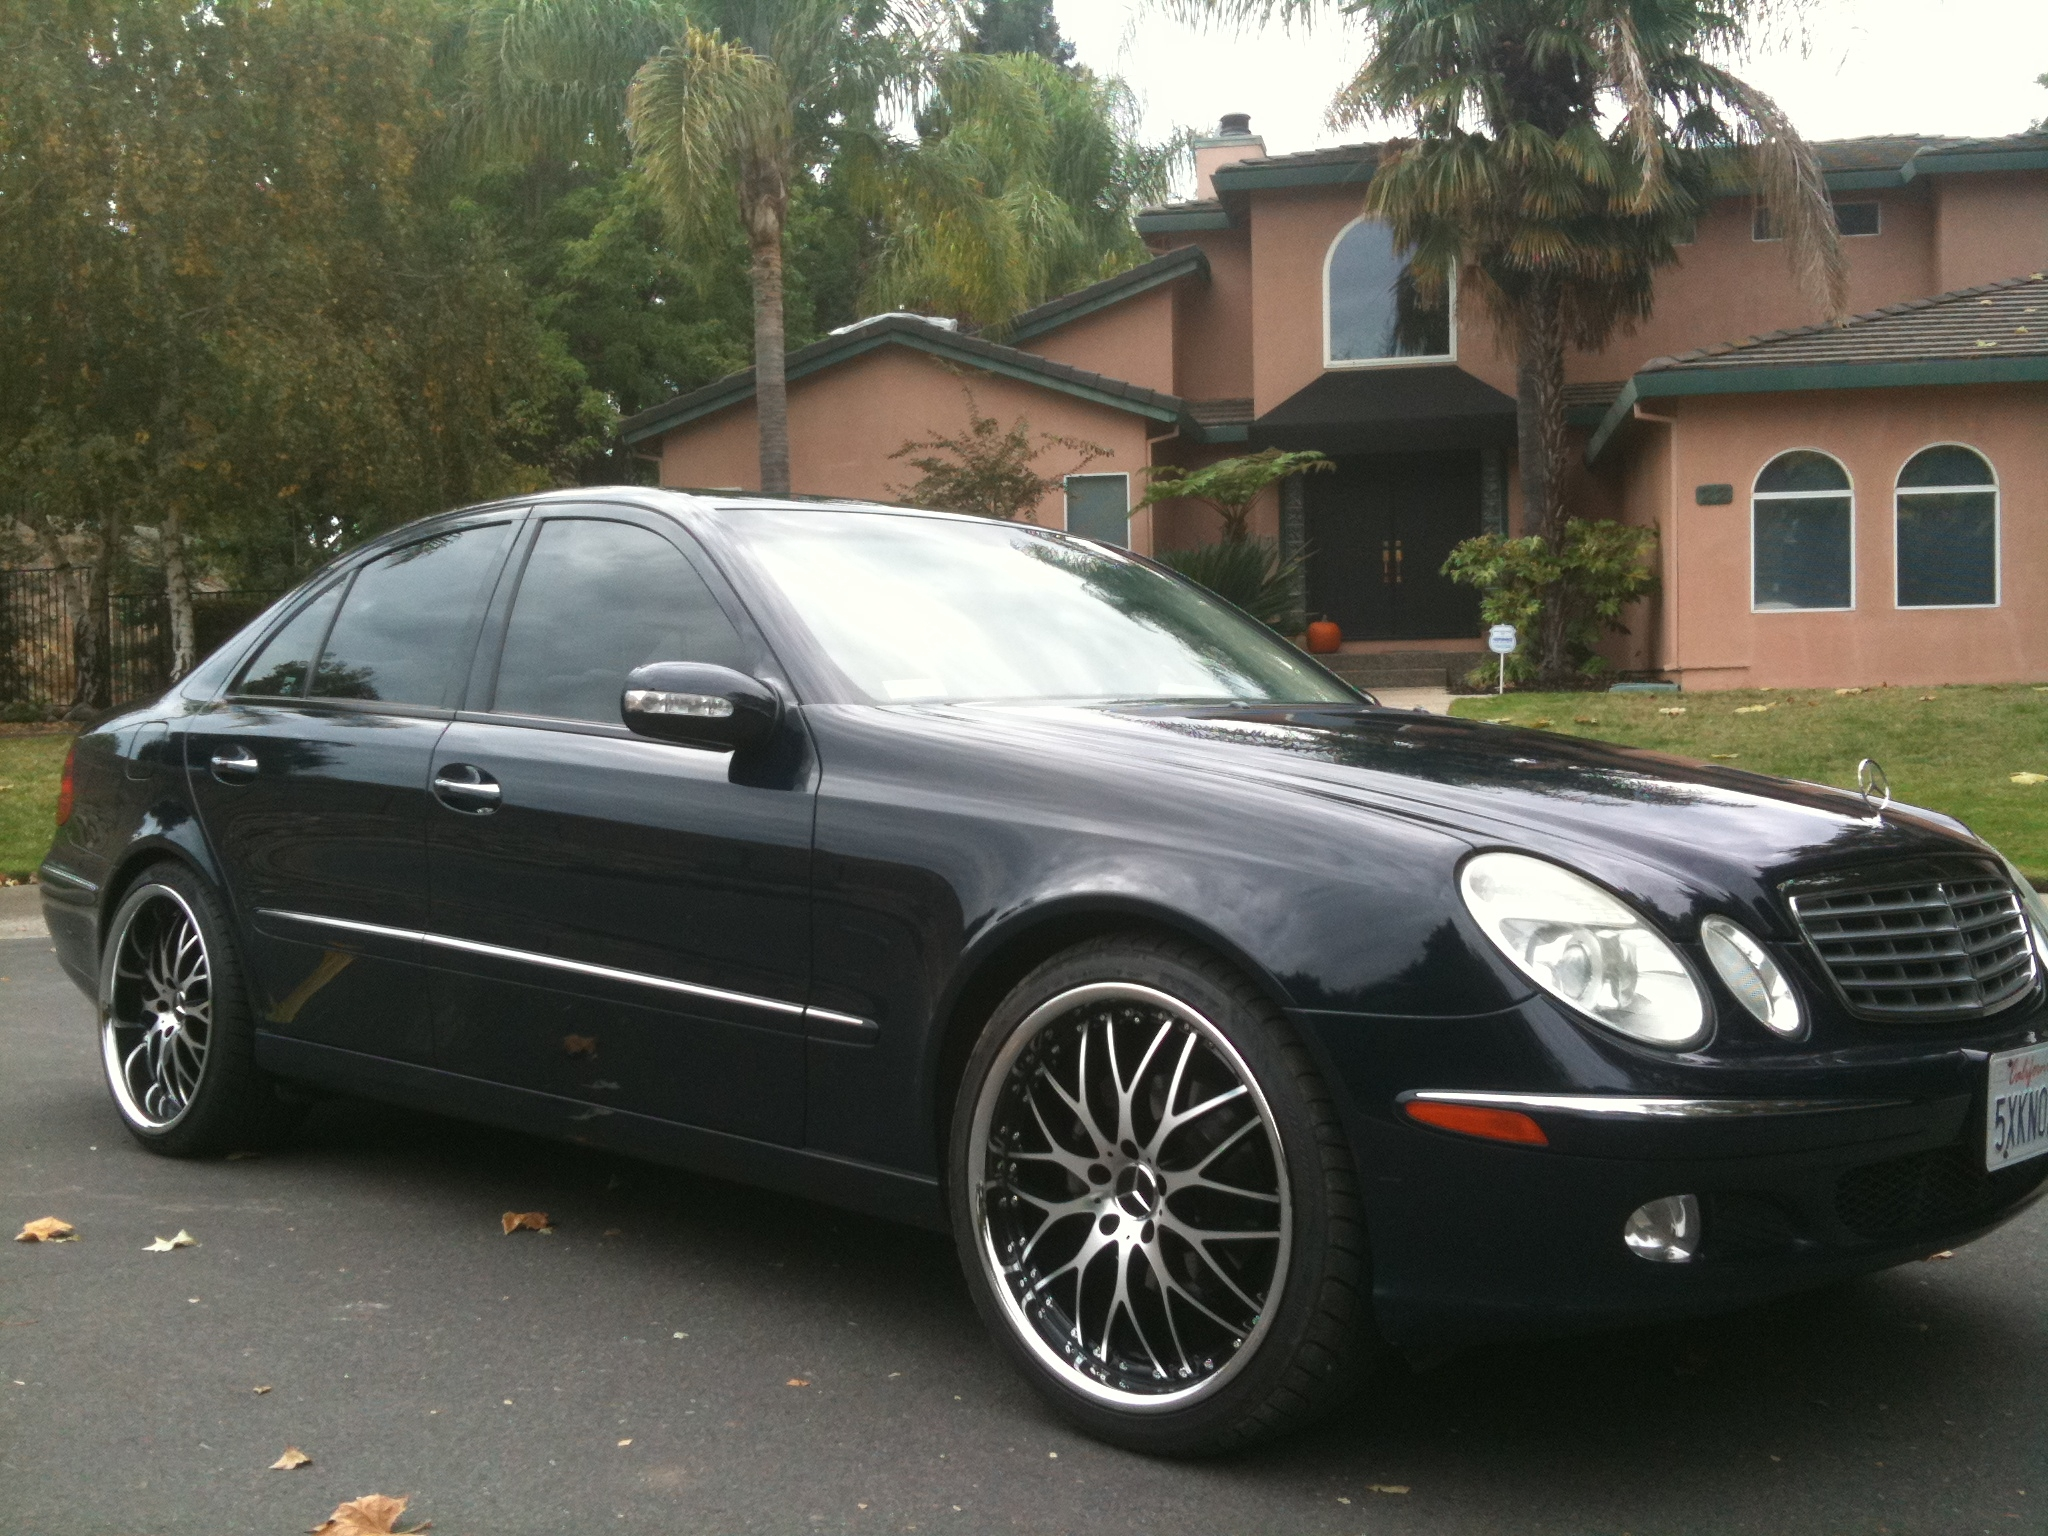 badboy415 2005 mercedes benz e classe320 sedan 4d specs photos modification info at cardomain. Black Bedroom Furniture Sets. Home Design Ideas